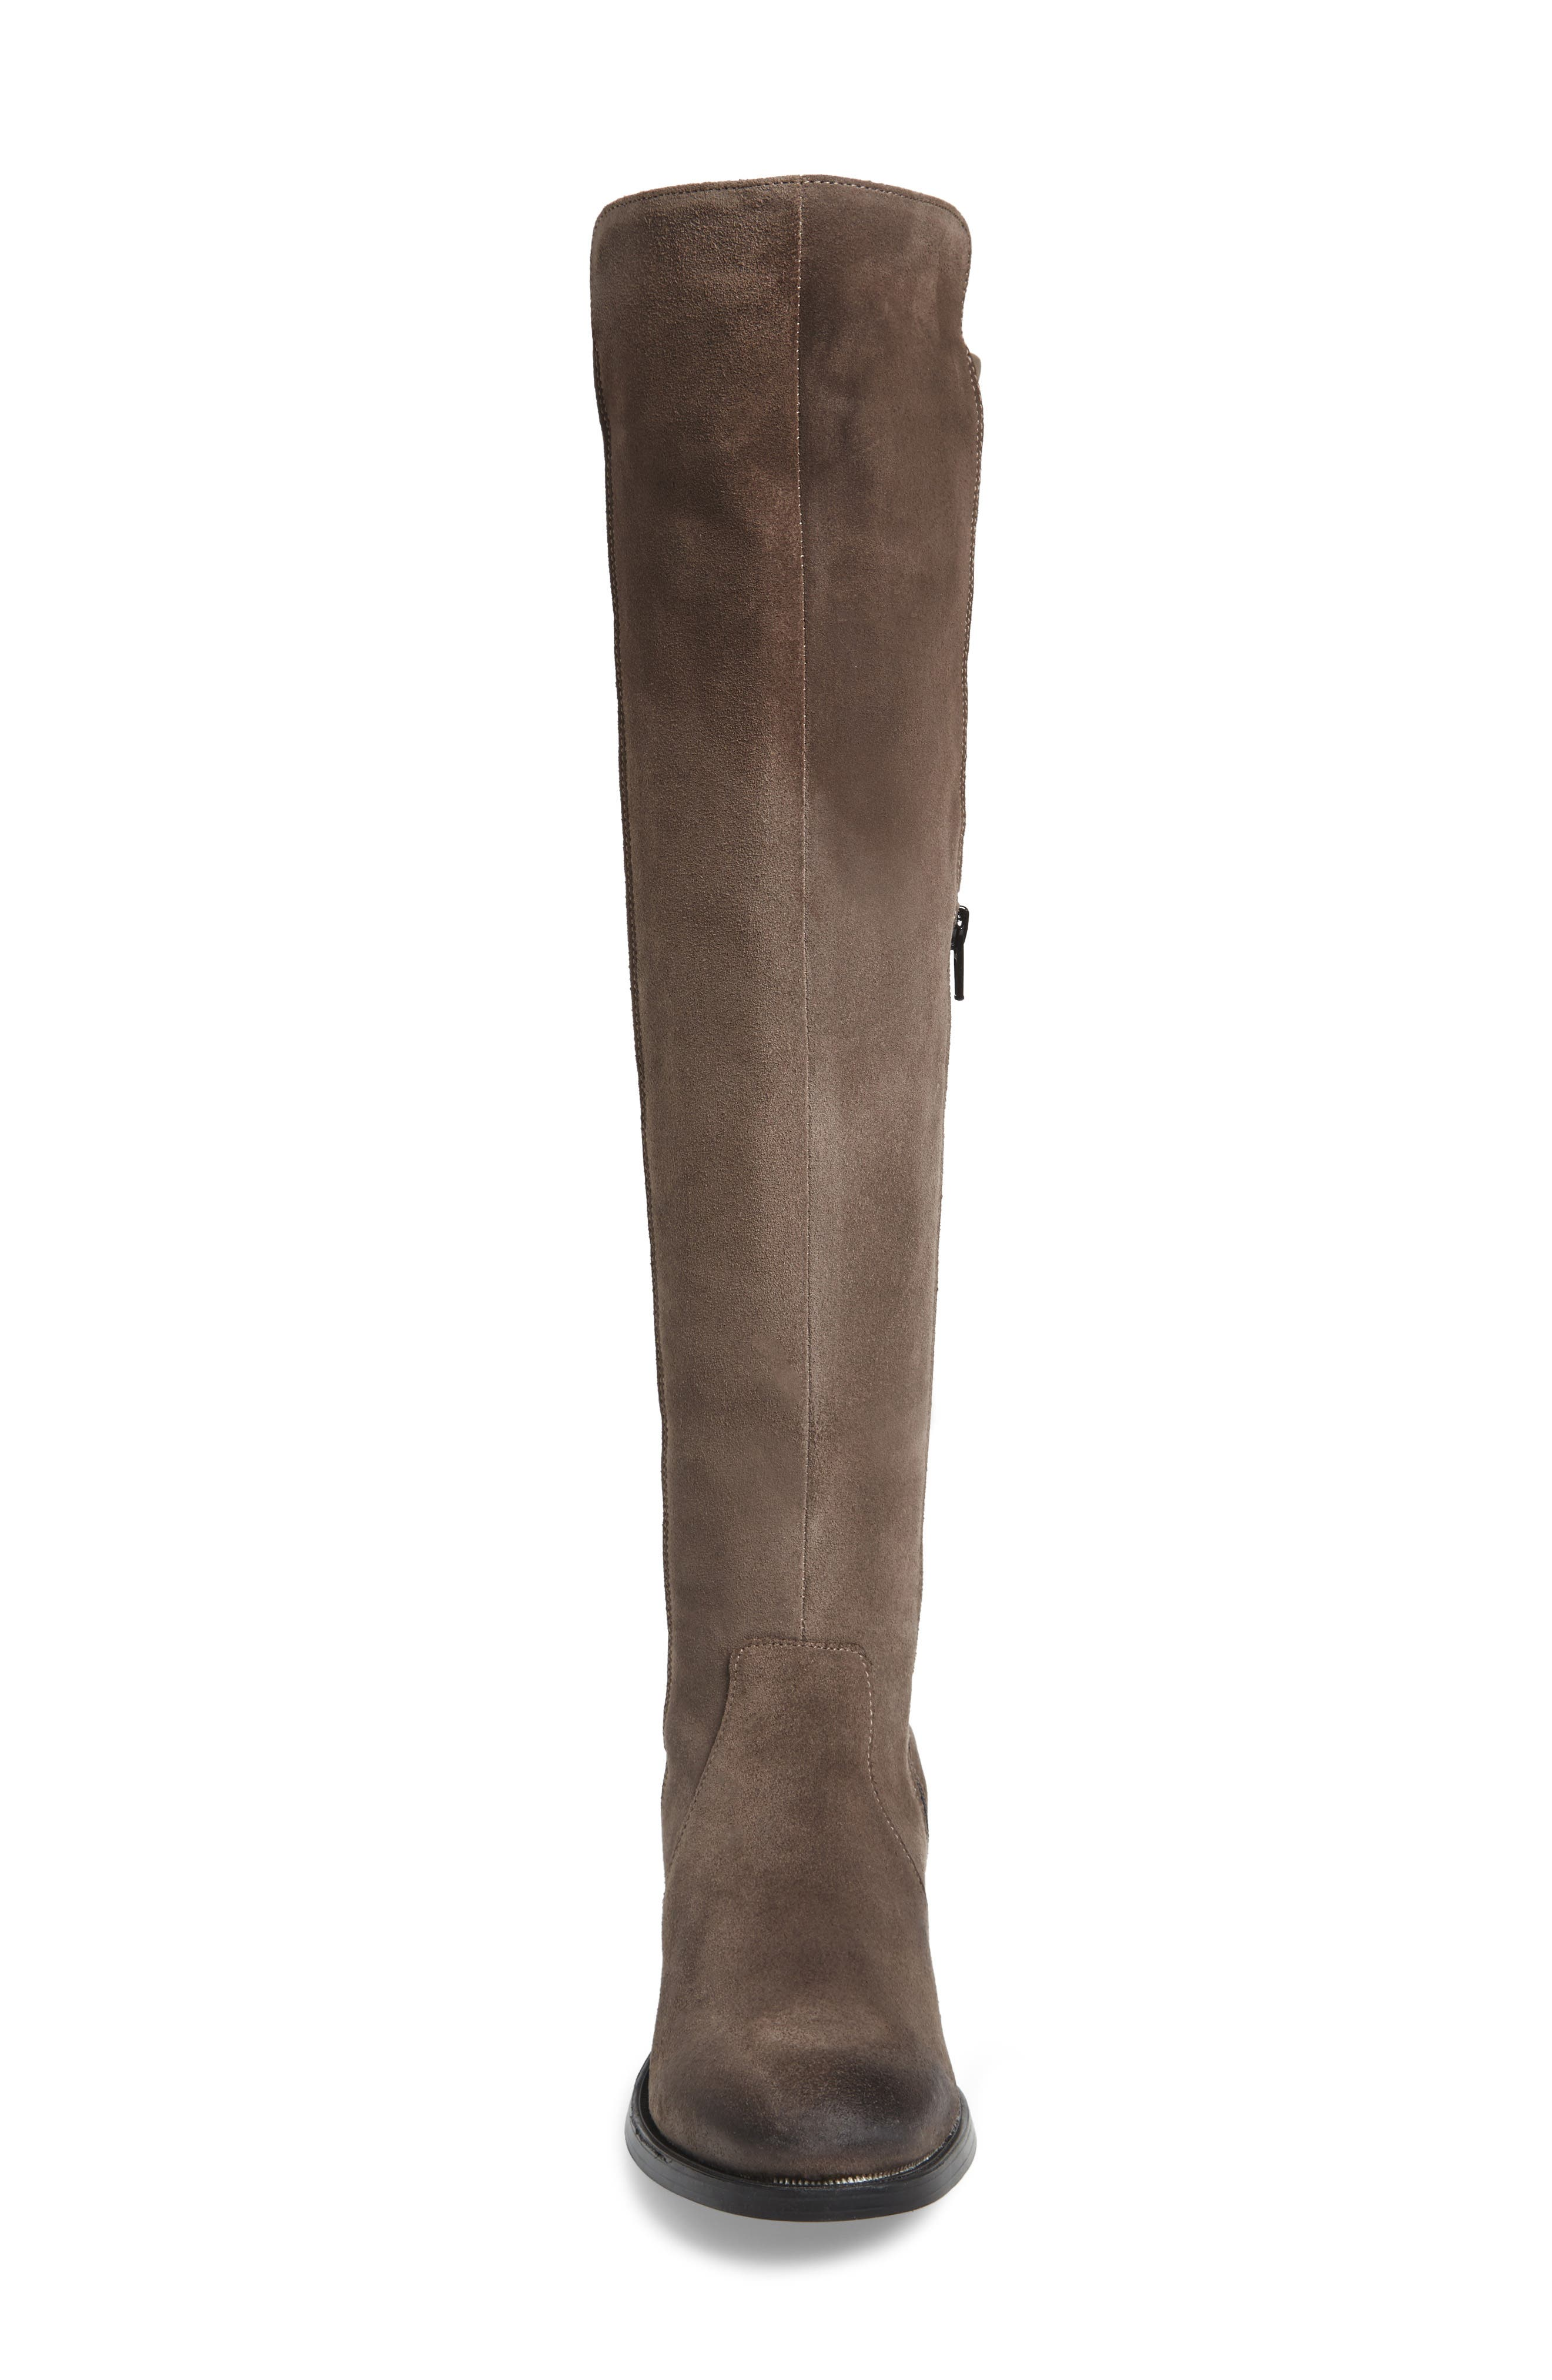 Bunt Waterproof Over the Knee Boot,                             Alternate thumbnail 4, color,                             Elephant Suede Leather